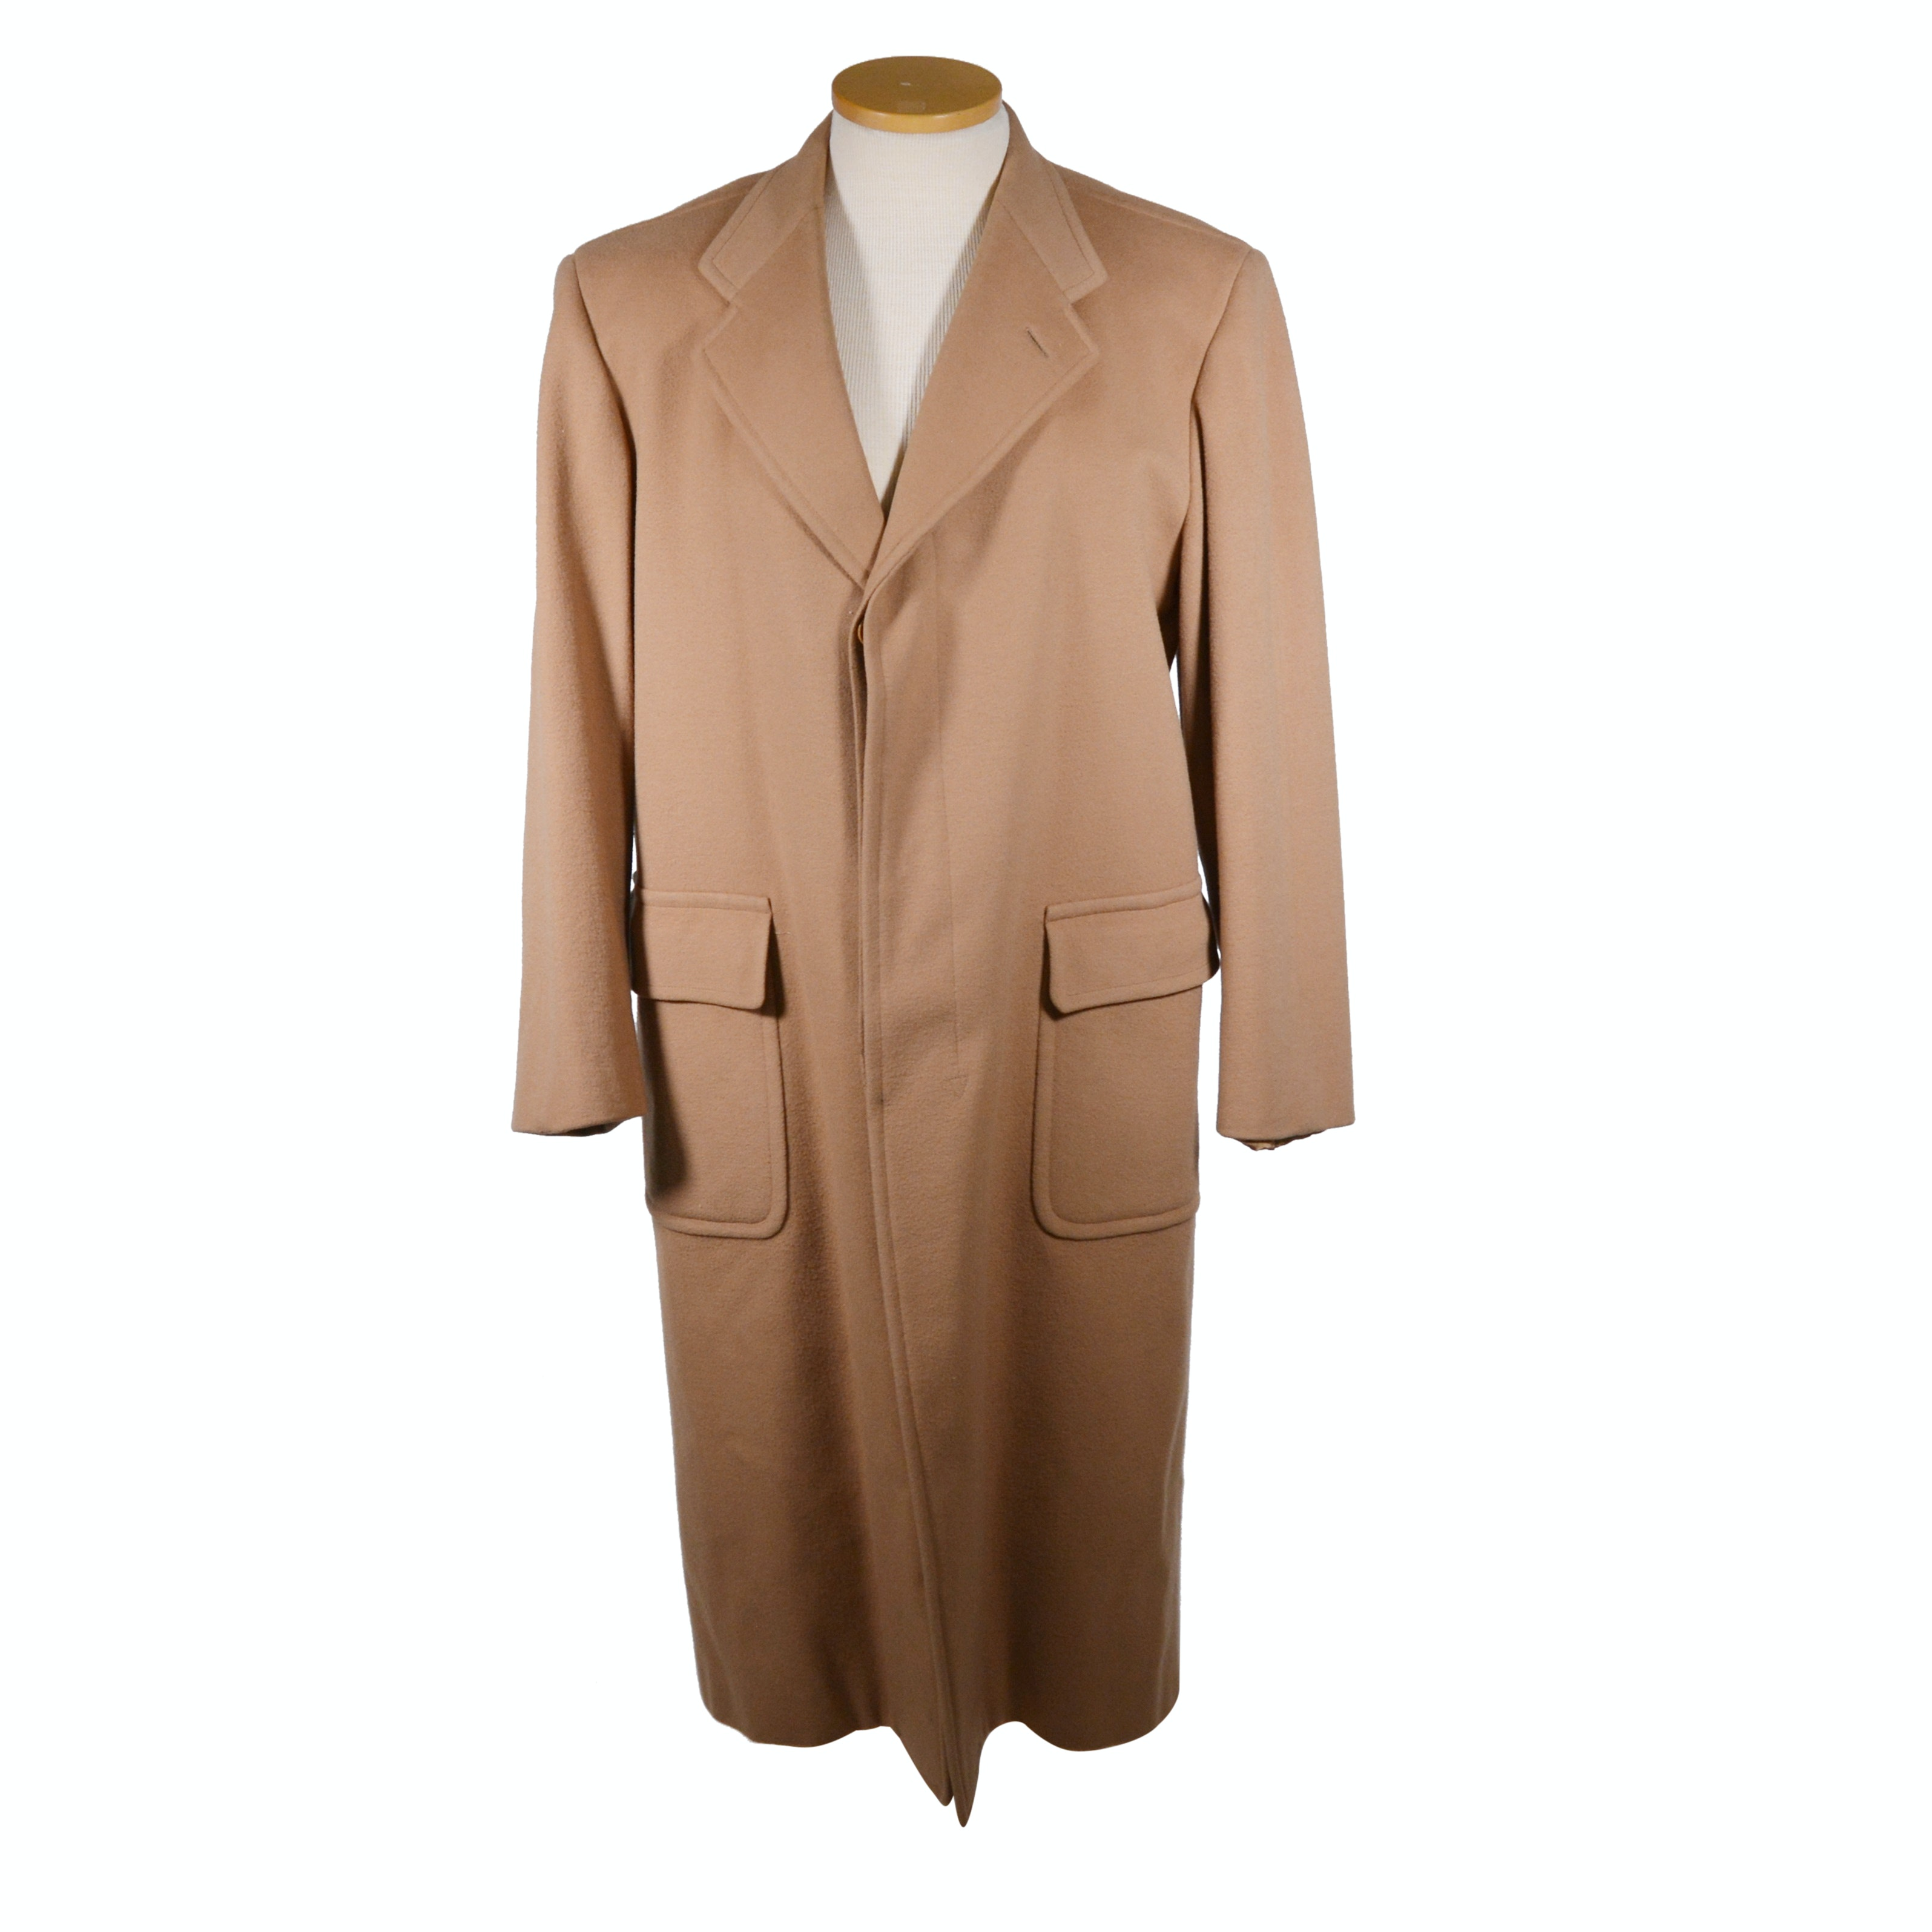 Men's Giorgio Armani Couture Camel Wool and Cashmere Overcoat